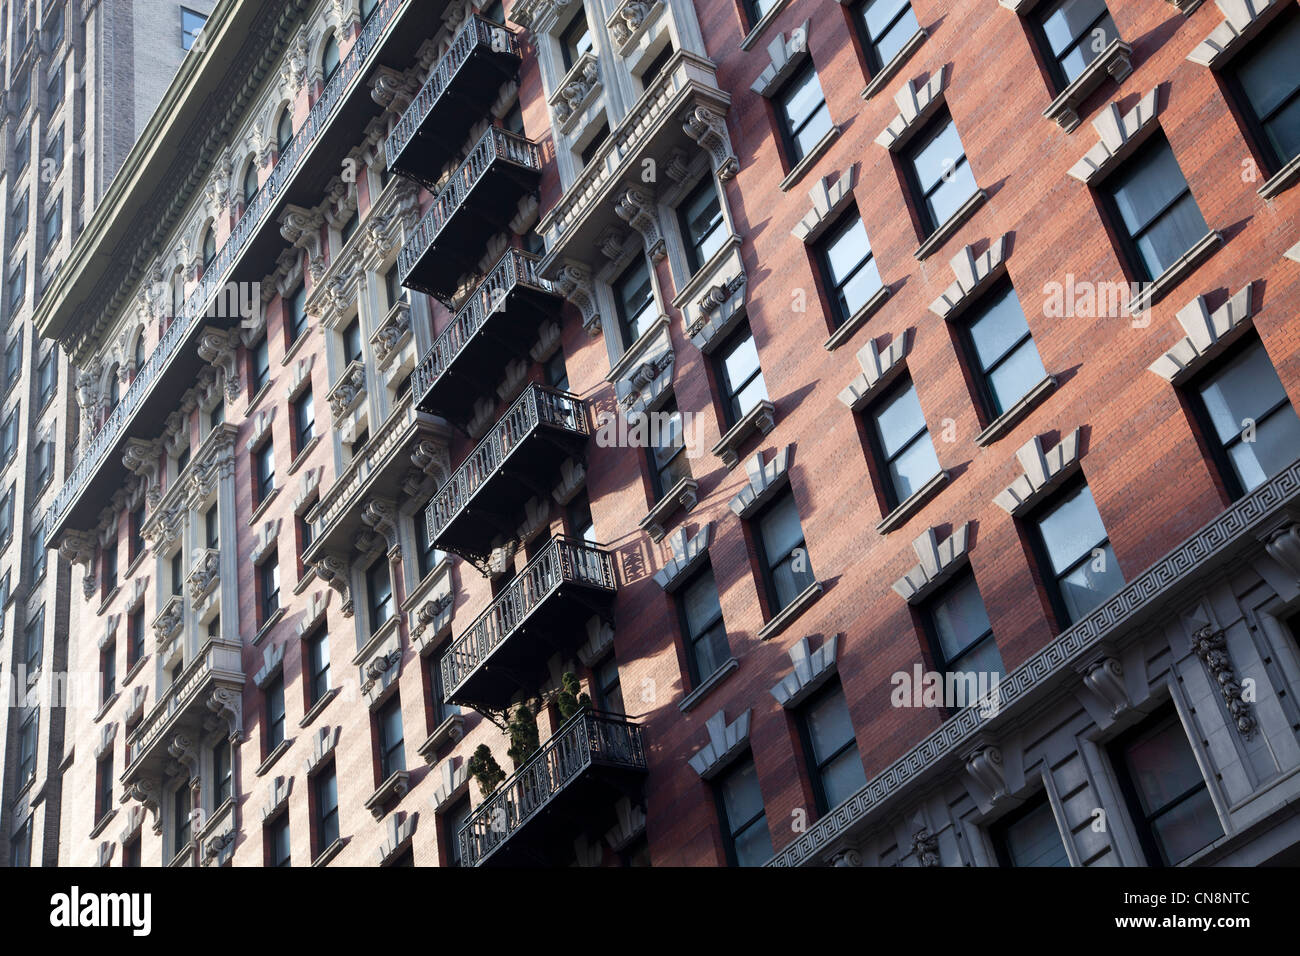 Ornate balconies on the side of a building in Manhattan, New York City - Stock Image